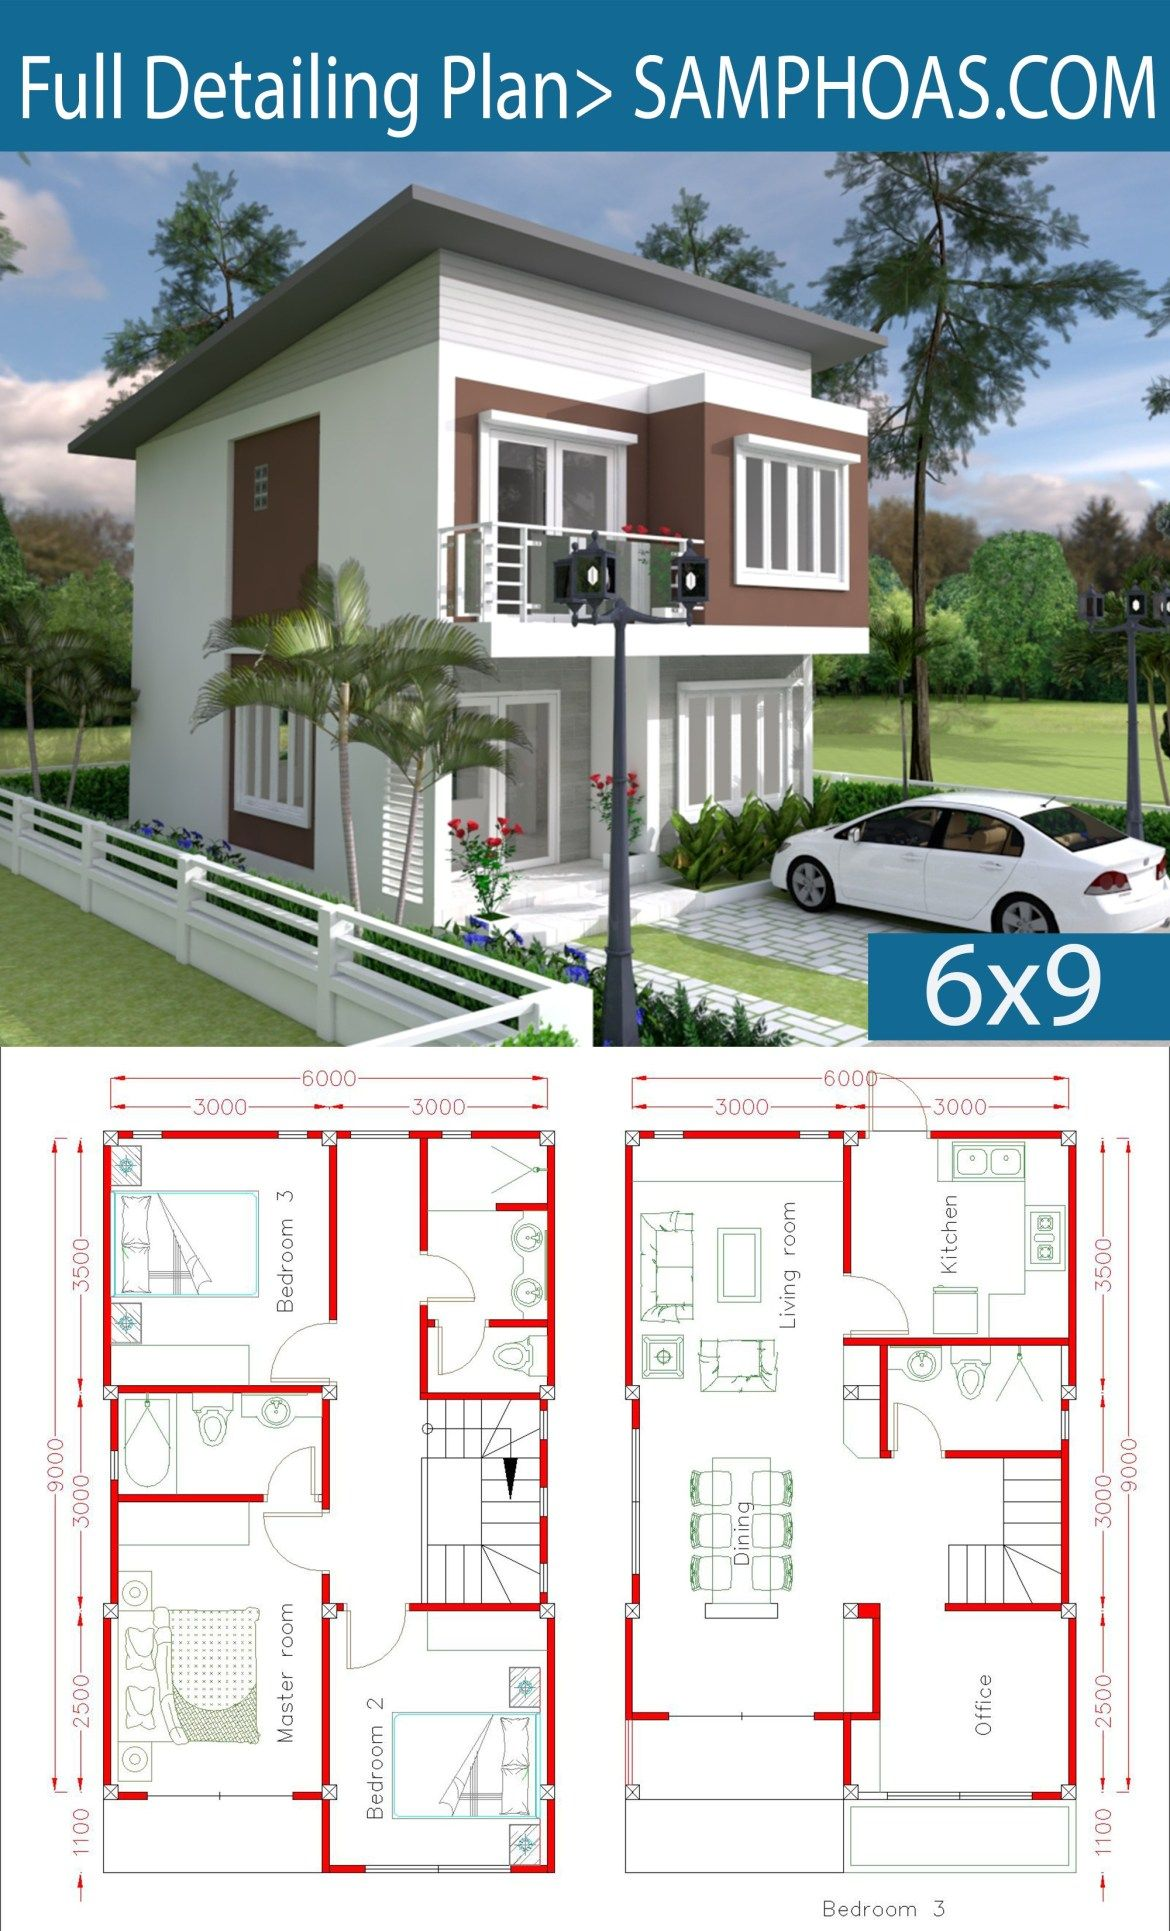 Simple Home Design Plan 6x9m With 3 Bedrooms Planos Para